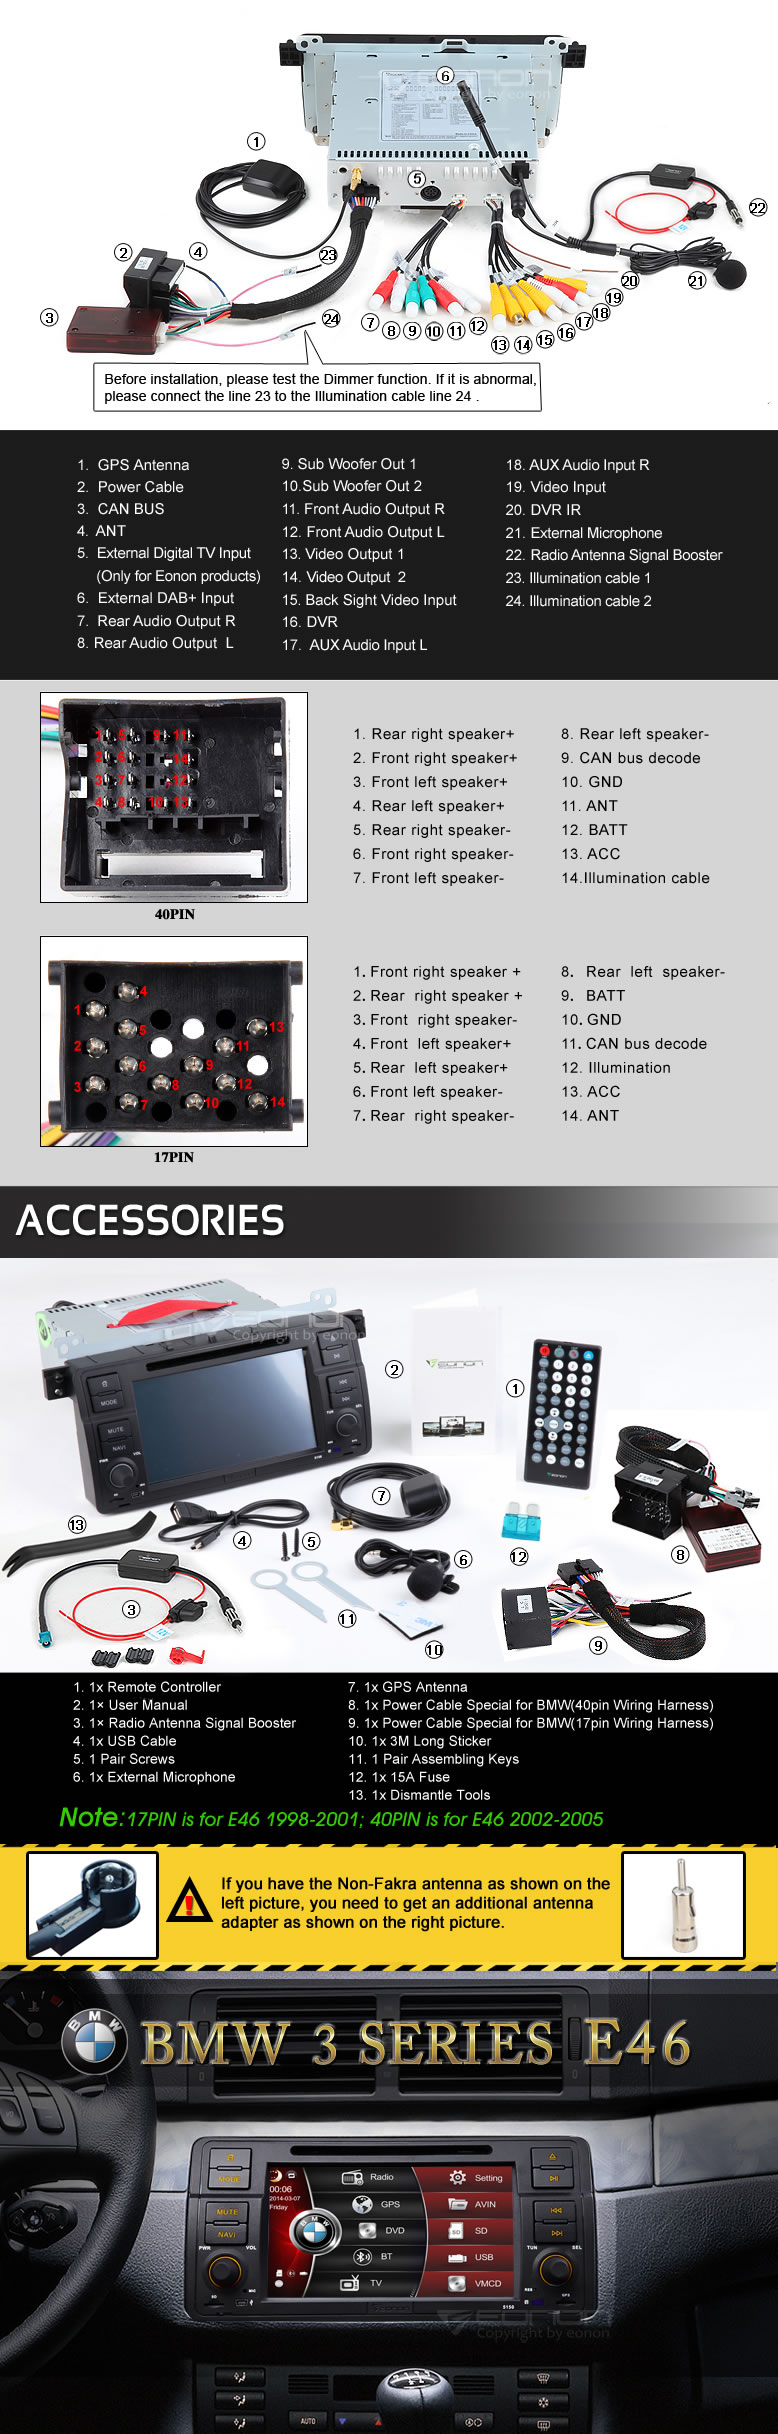 hight resolution of wince vehicle specific gps dv bmw e46 98 05 eonon 7 car hd dvd gps car iso stereo wiring